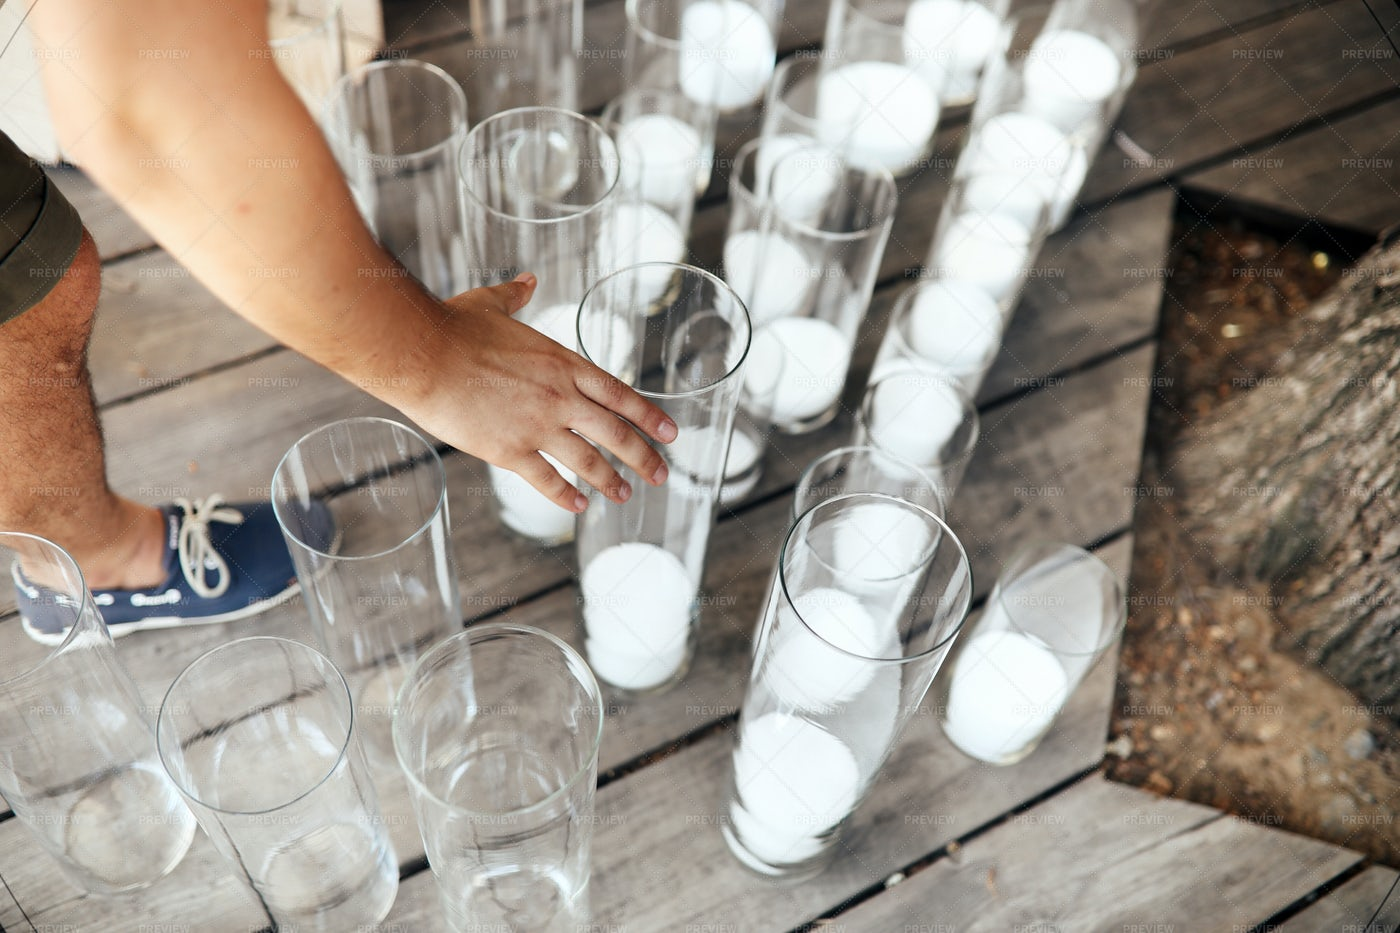 Candles In Glasses: Stock Photos